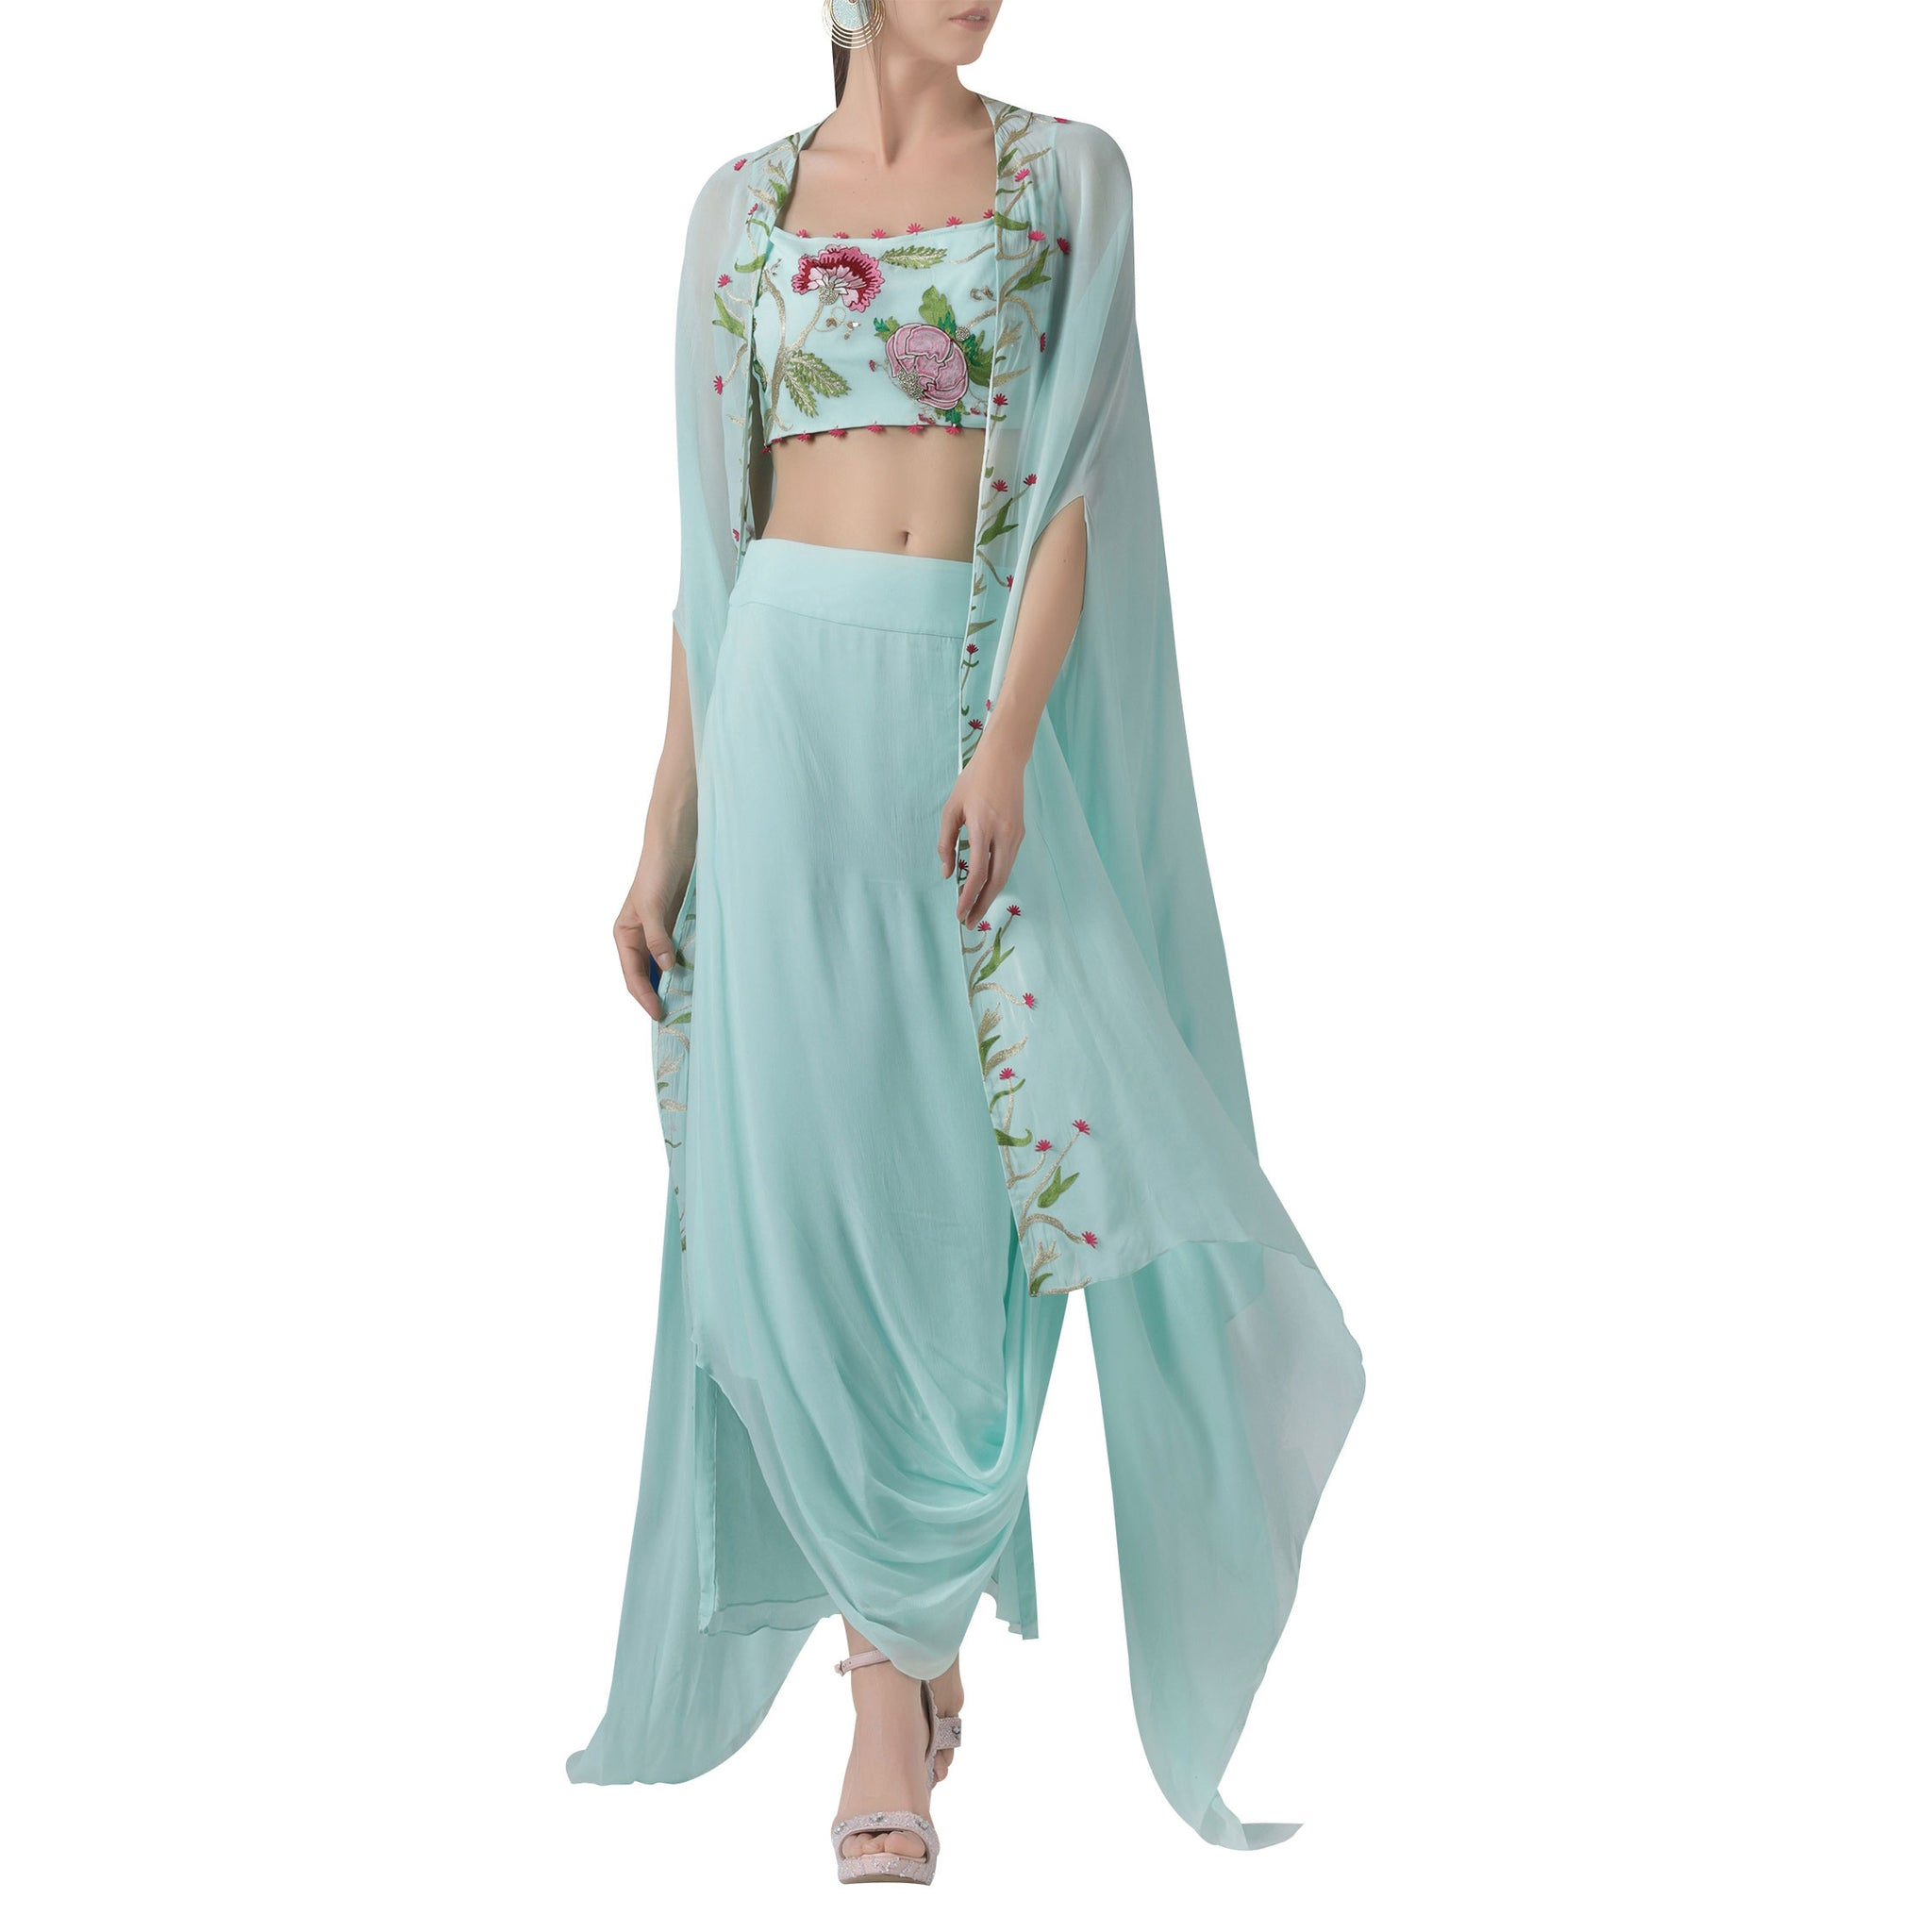 Embroidered Cape with Crop Top & Draped Skirt